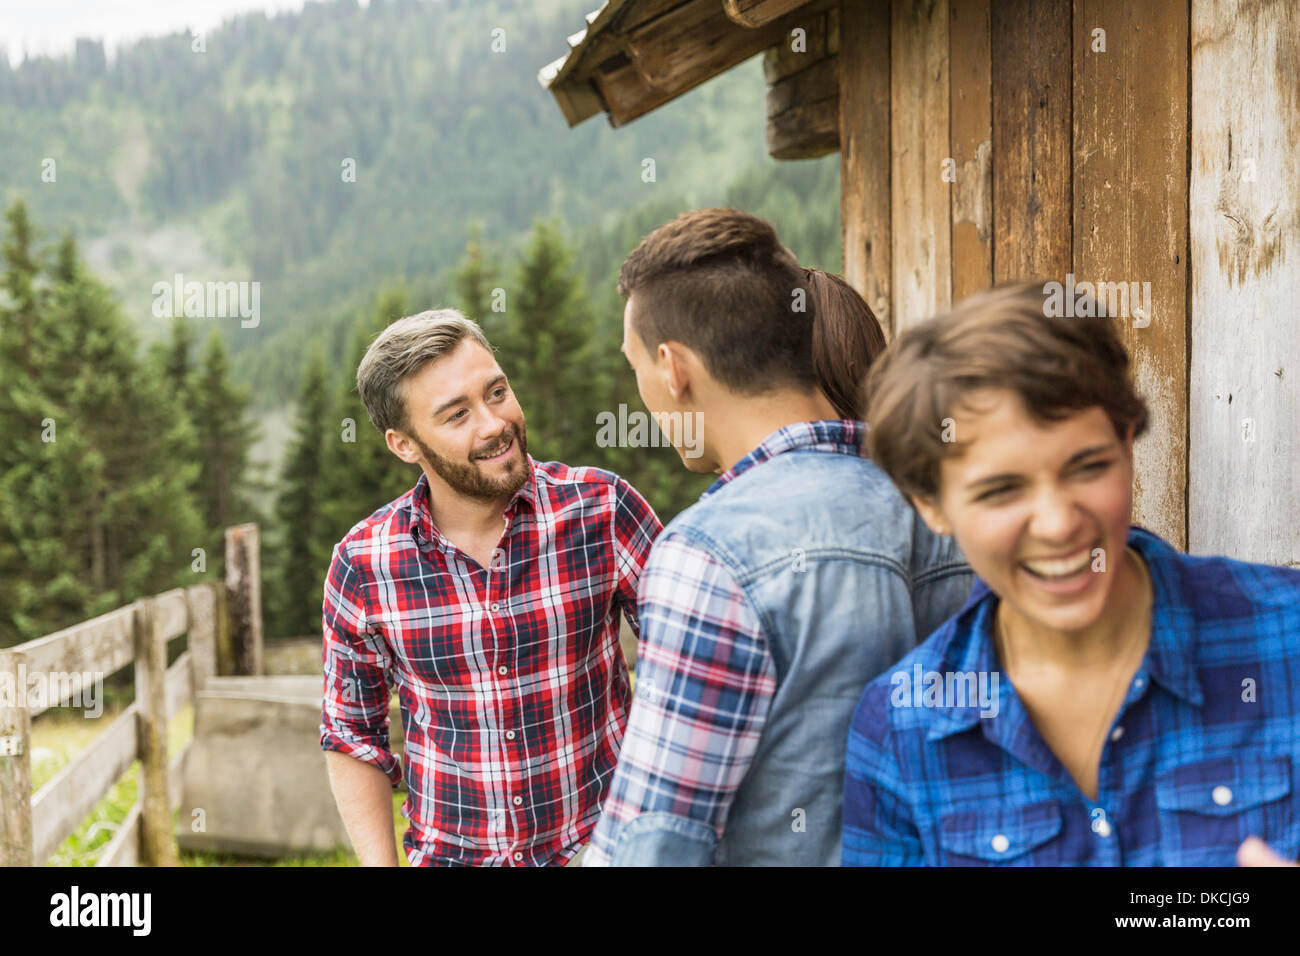 Group of friends chatting behind wooden shack - Stock Image